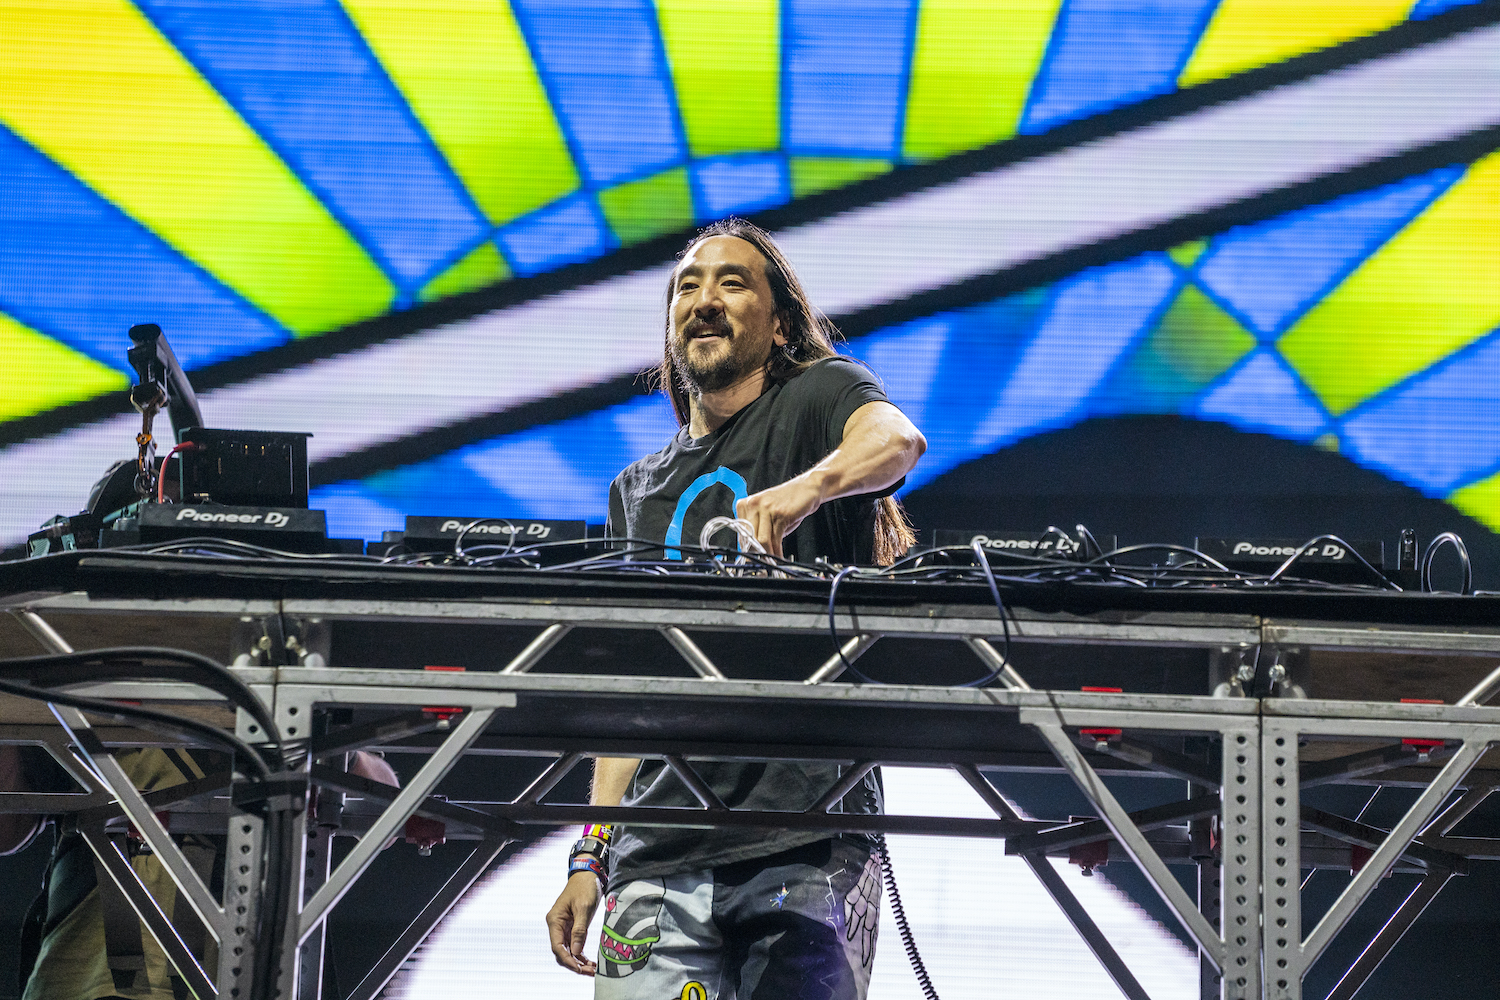 Steve Aoki Has Secured Funding to Pilot His NFT TV Show